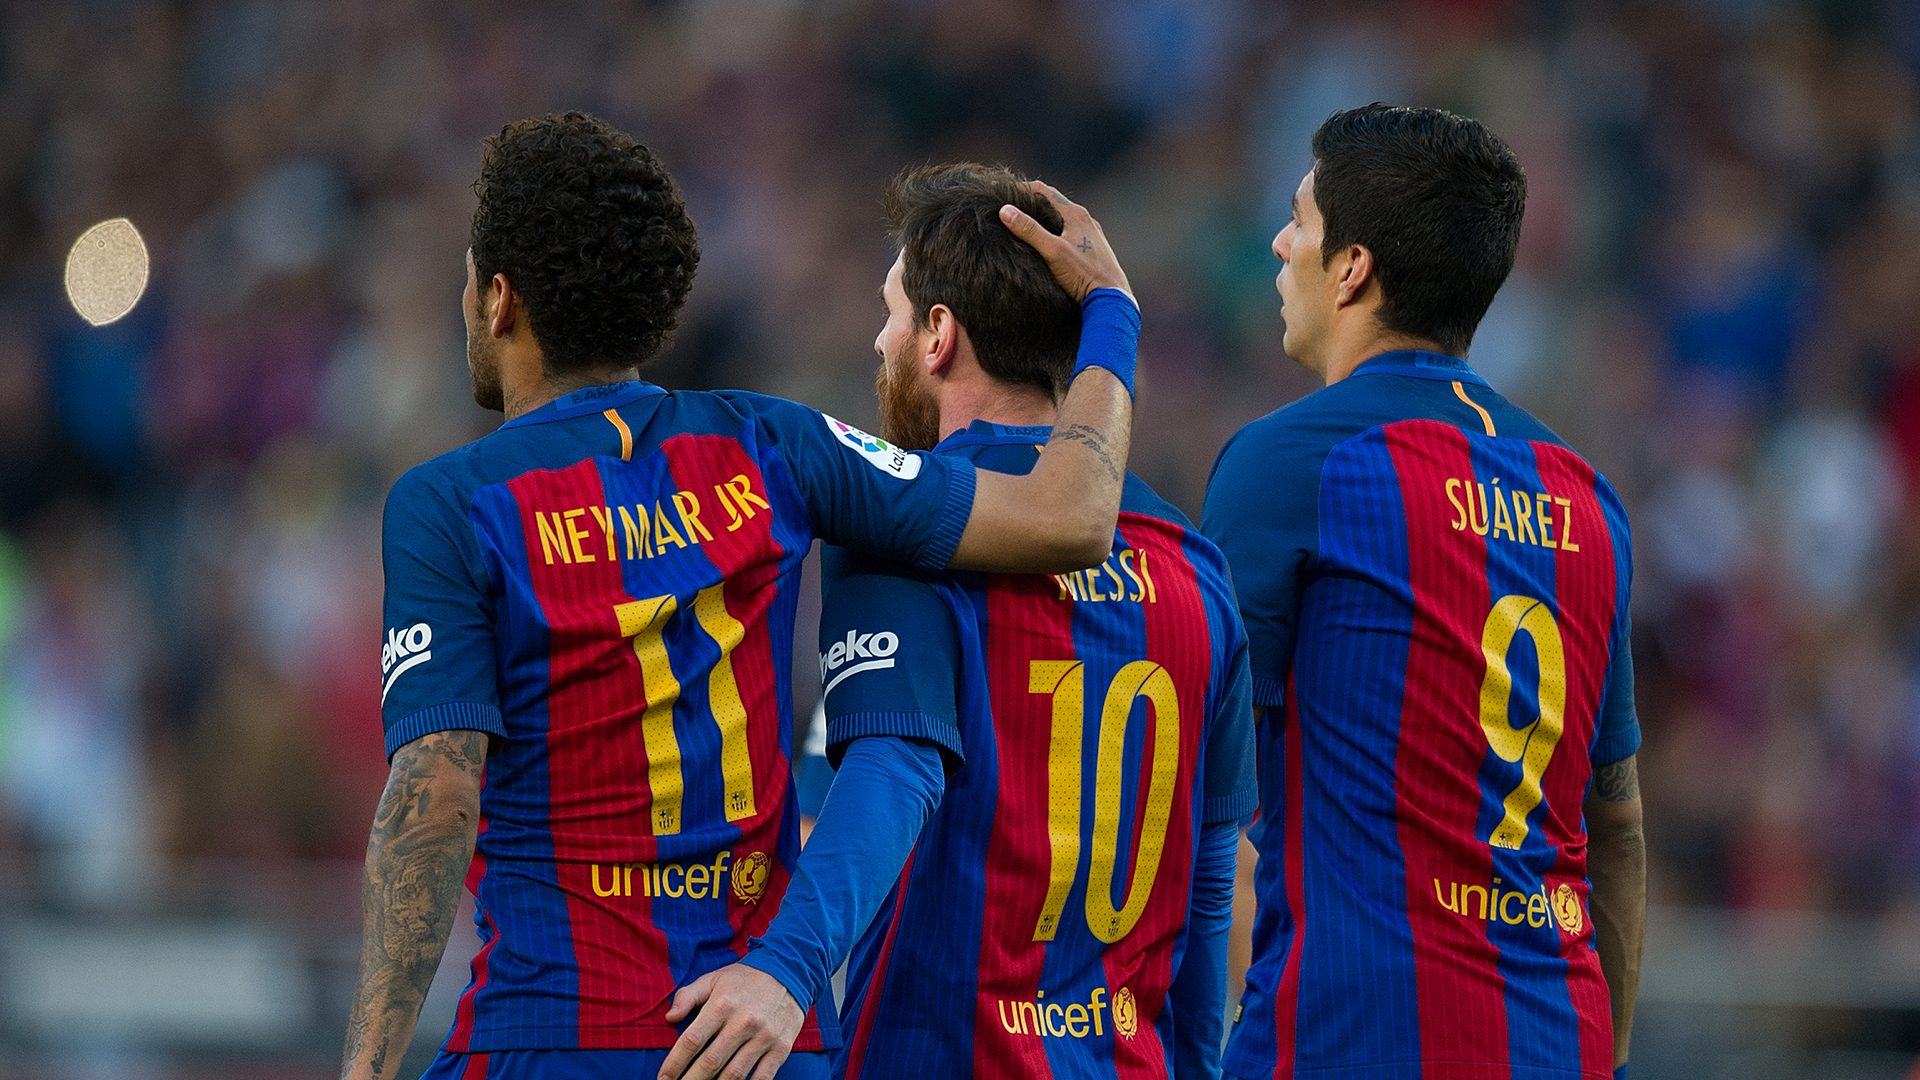 'I miss Messi and Suarez' - Neymar pines for past Barcelona team-mates but reaffirms PSG future